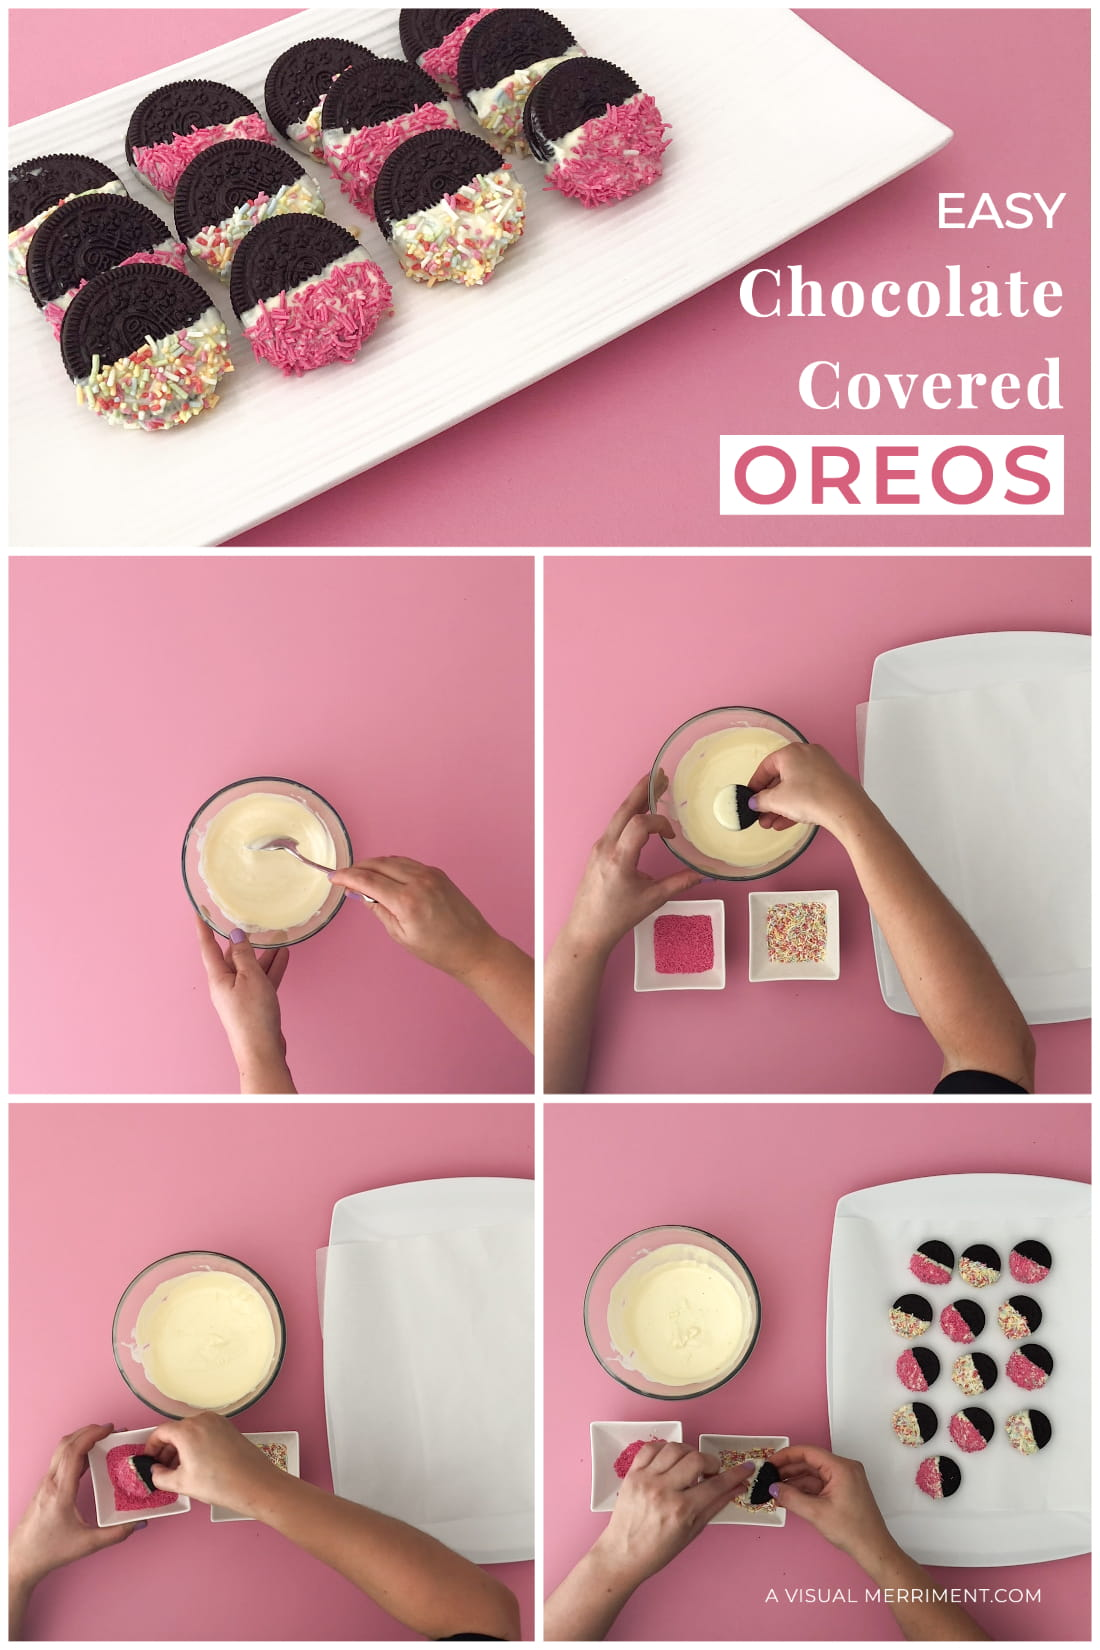 Step by step pictures of making chocolate covered Oreos